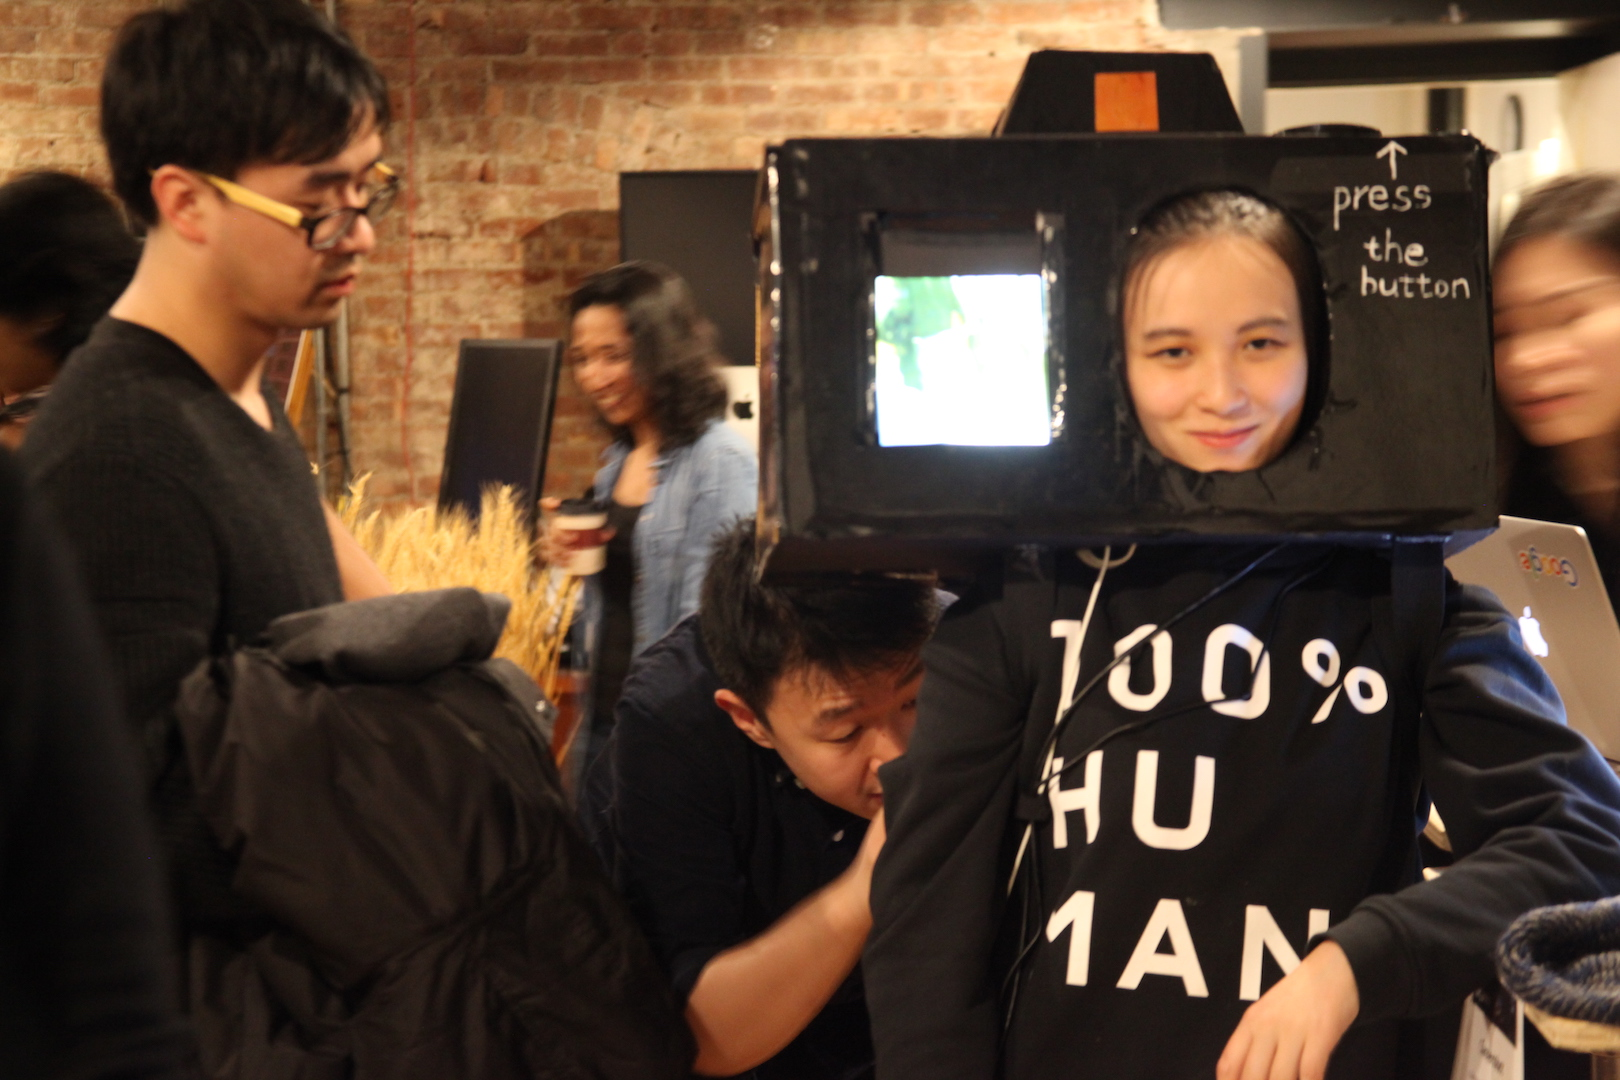 A woman wearing a gigantic looking camera on her head